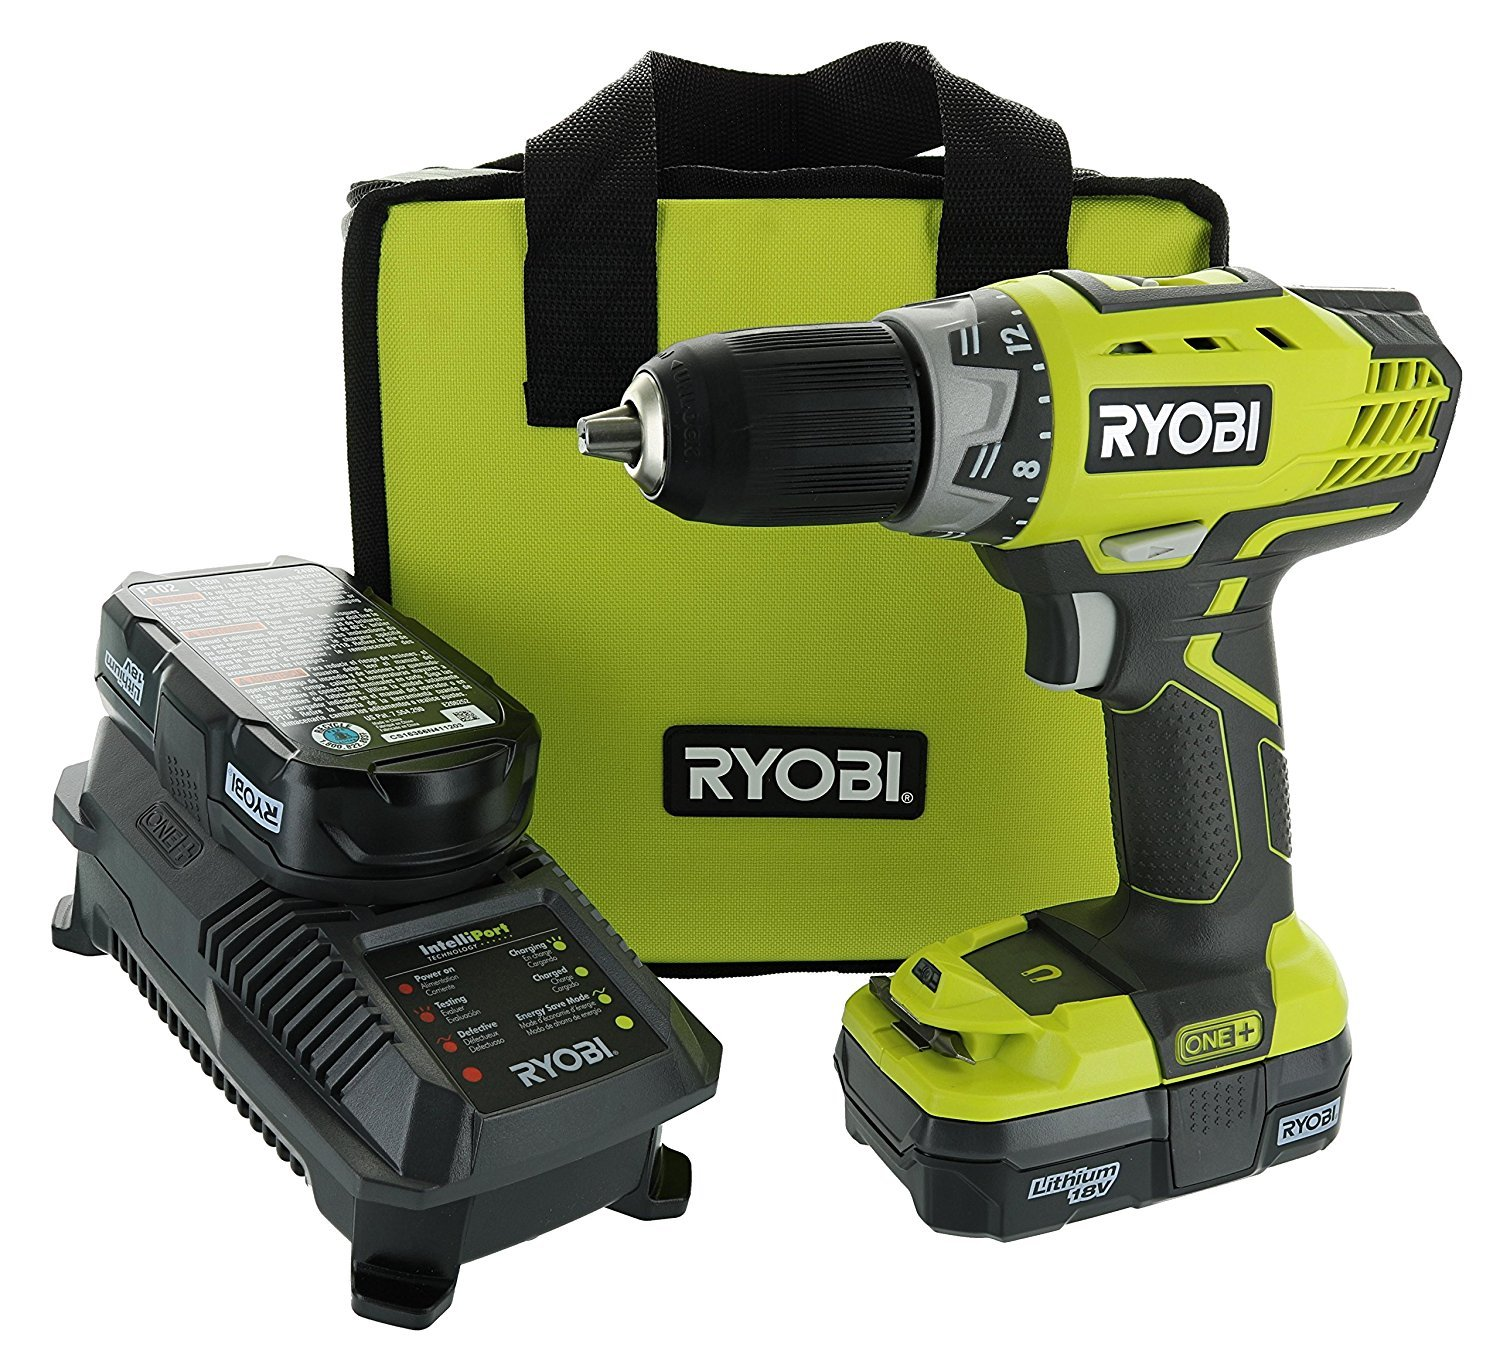 Ryobi P1811 One+ Compact Drill Black Friday Deals 2020